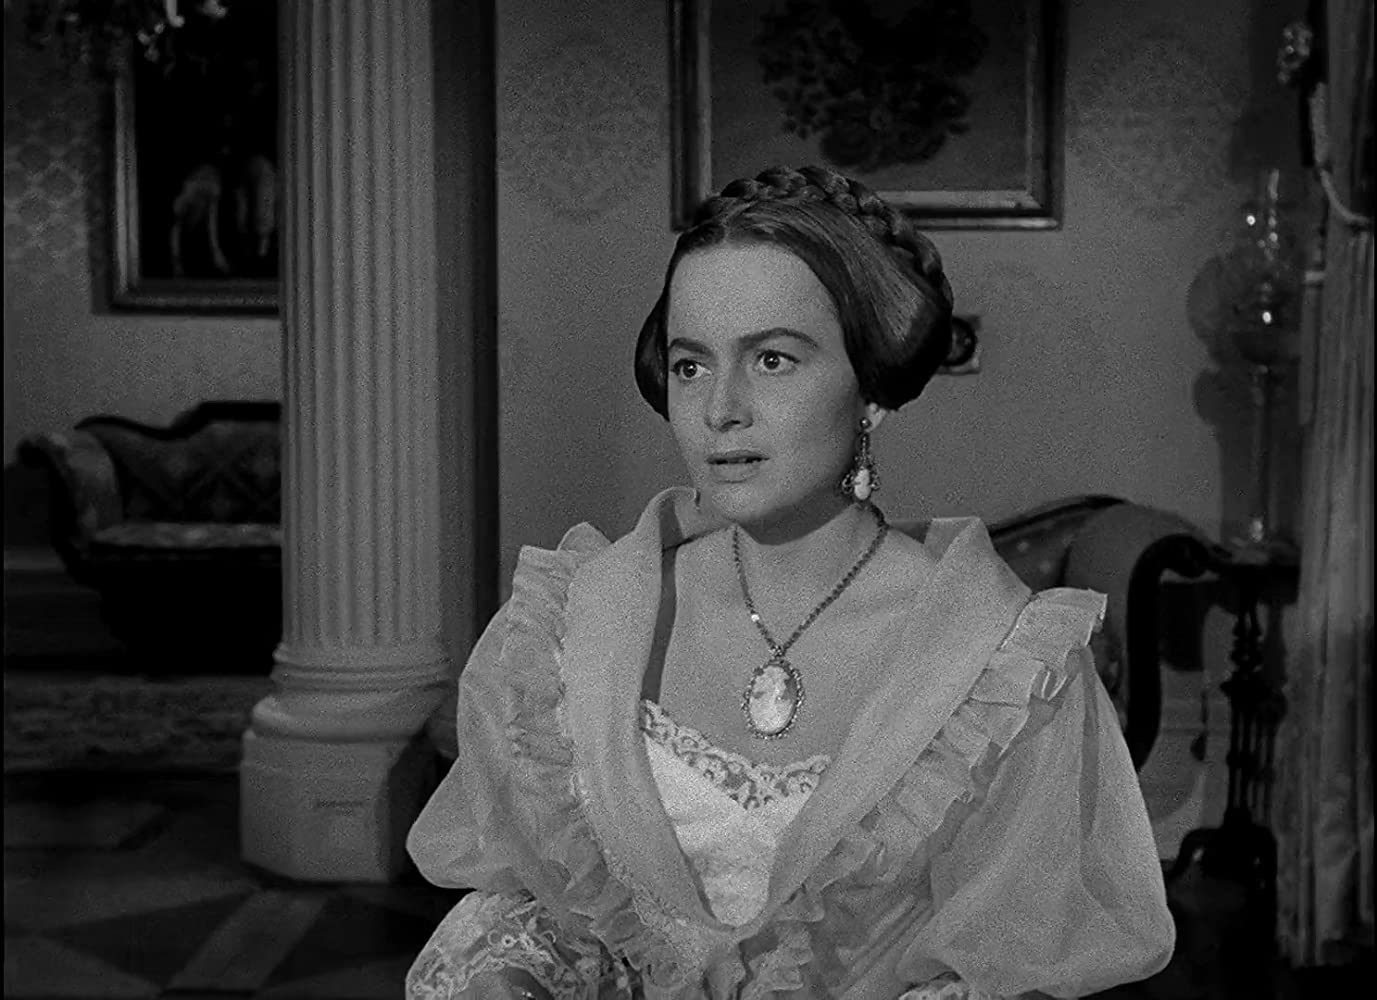 Olivia de Havilland in The Heiress (1949)